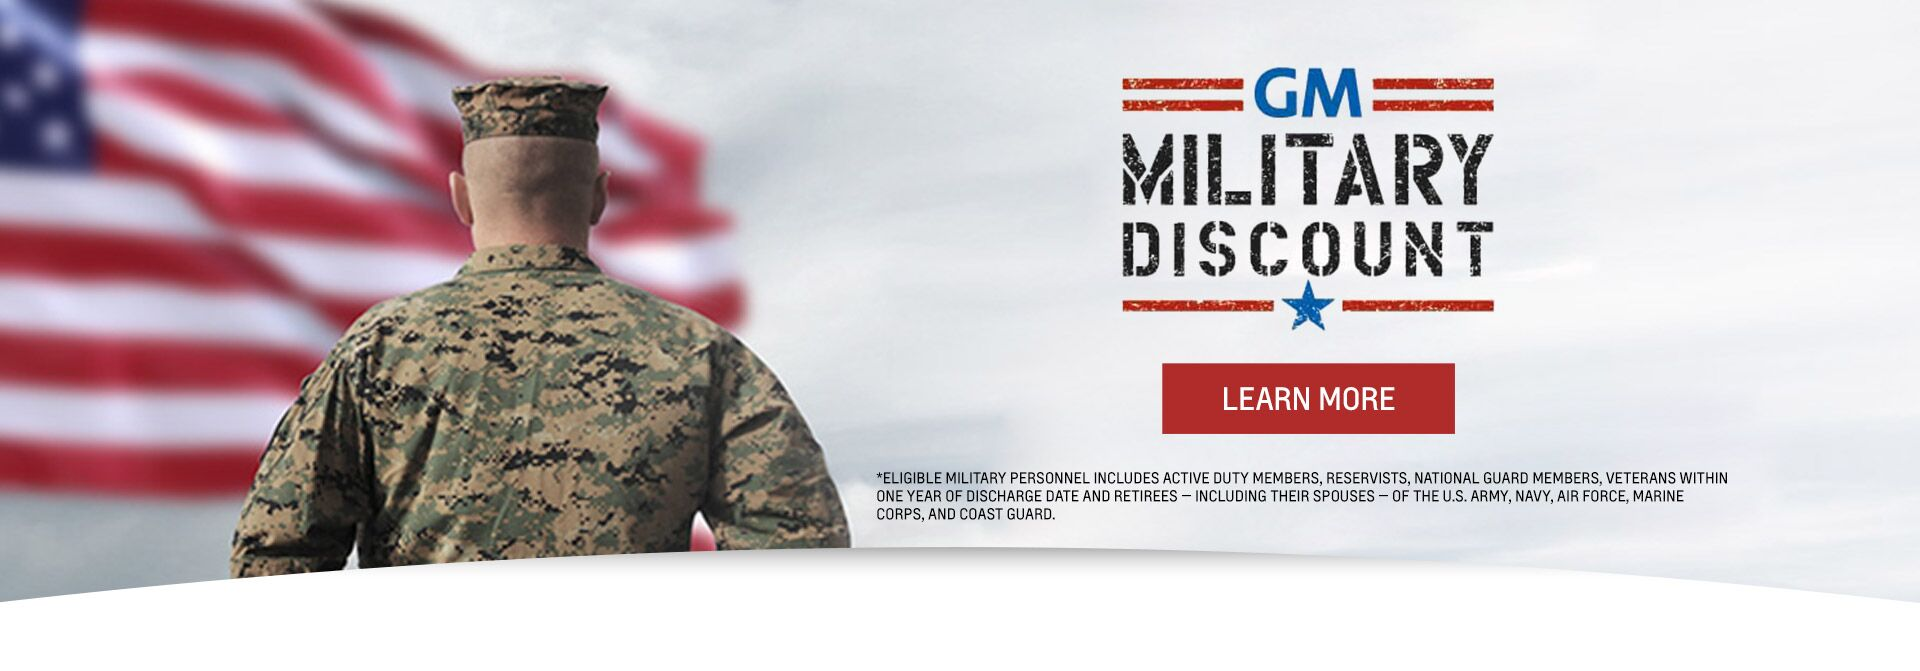 Dondelinger Auto supports our active duty military and veterans